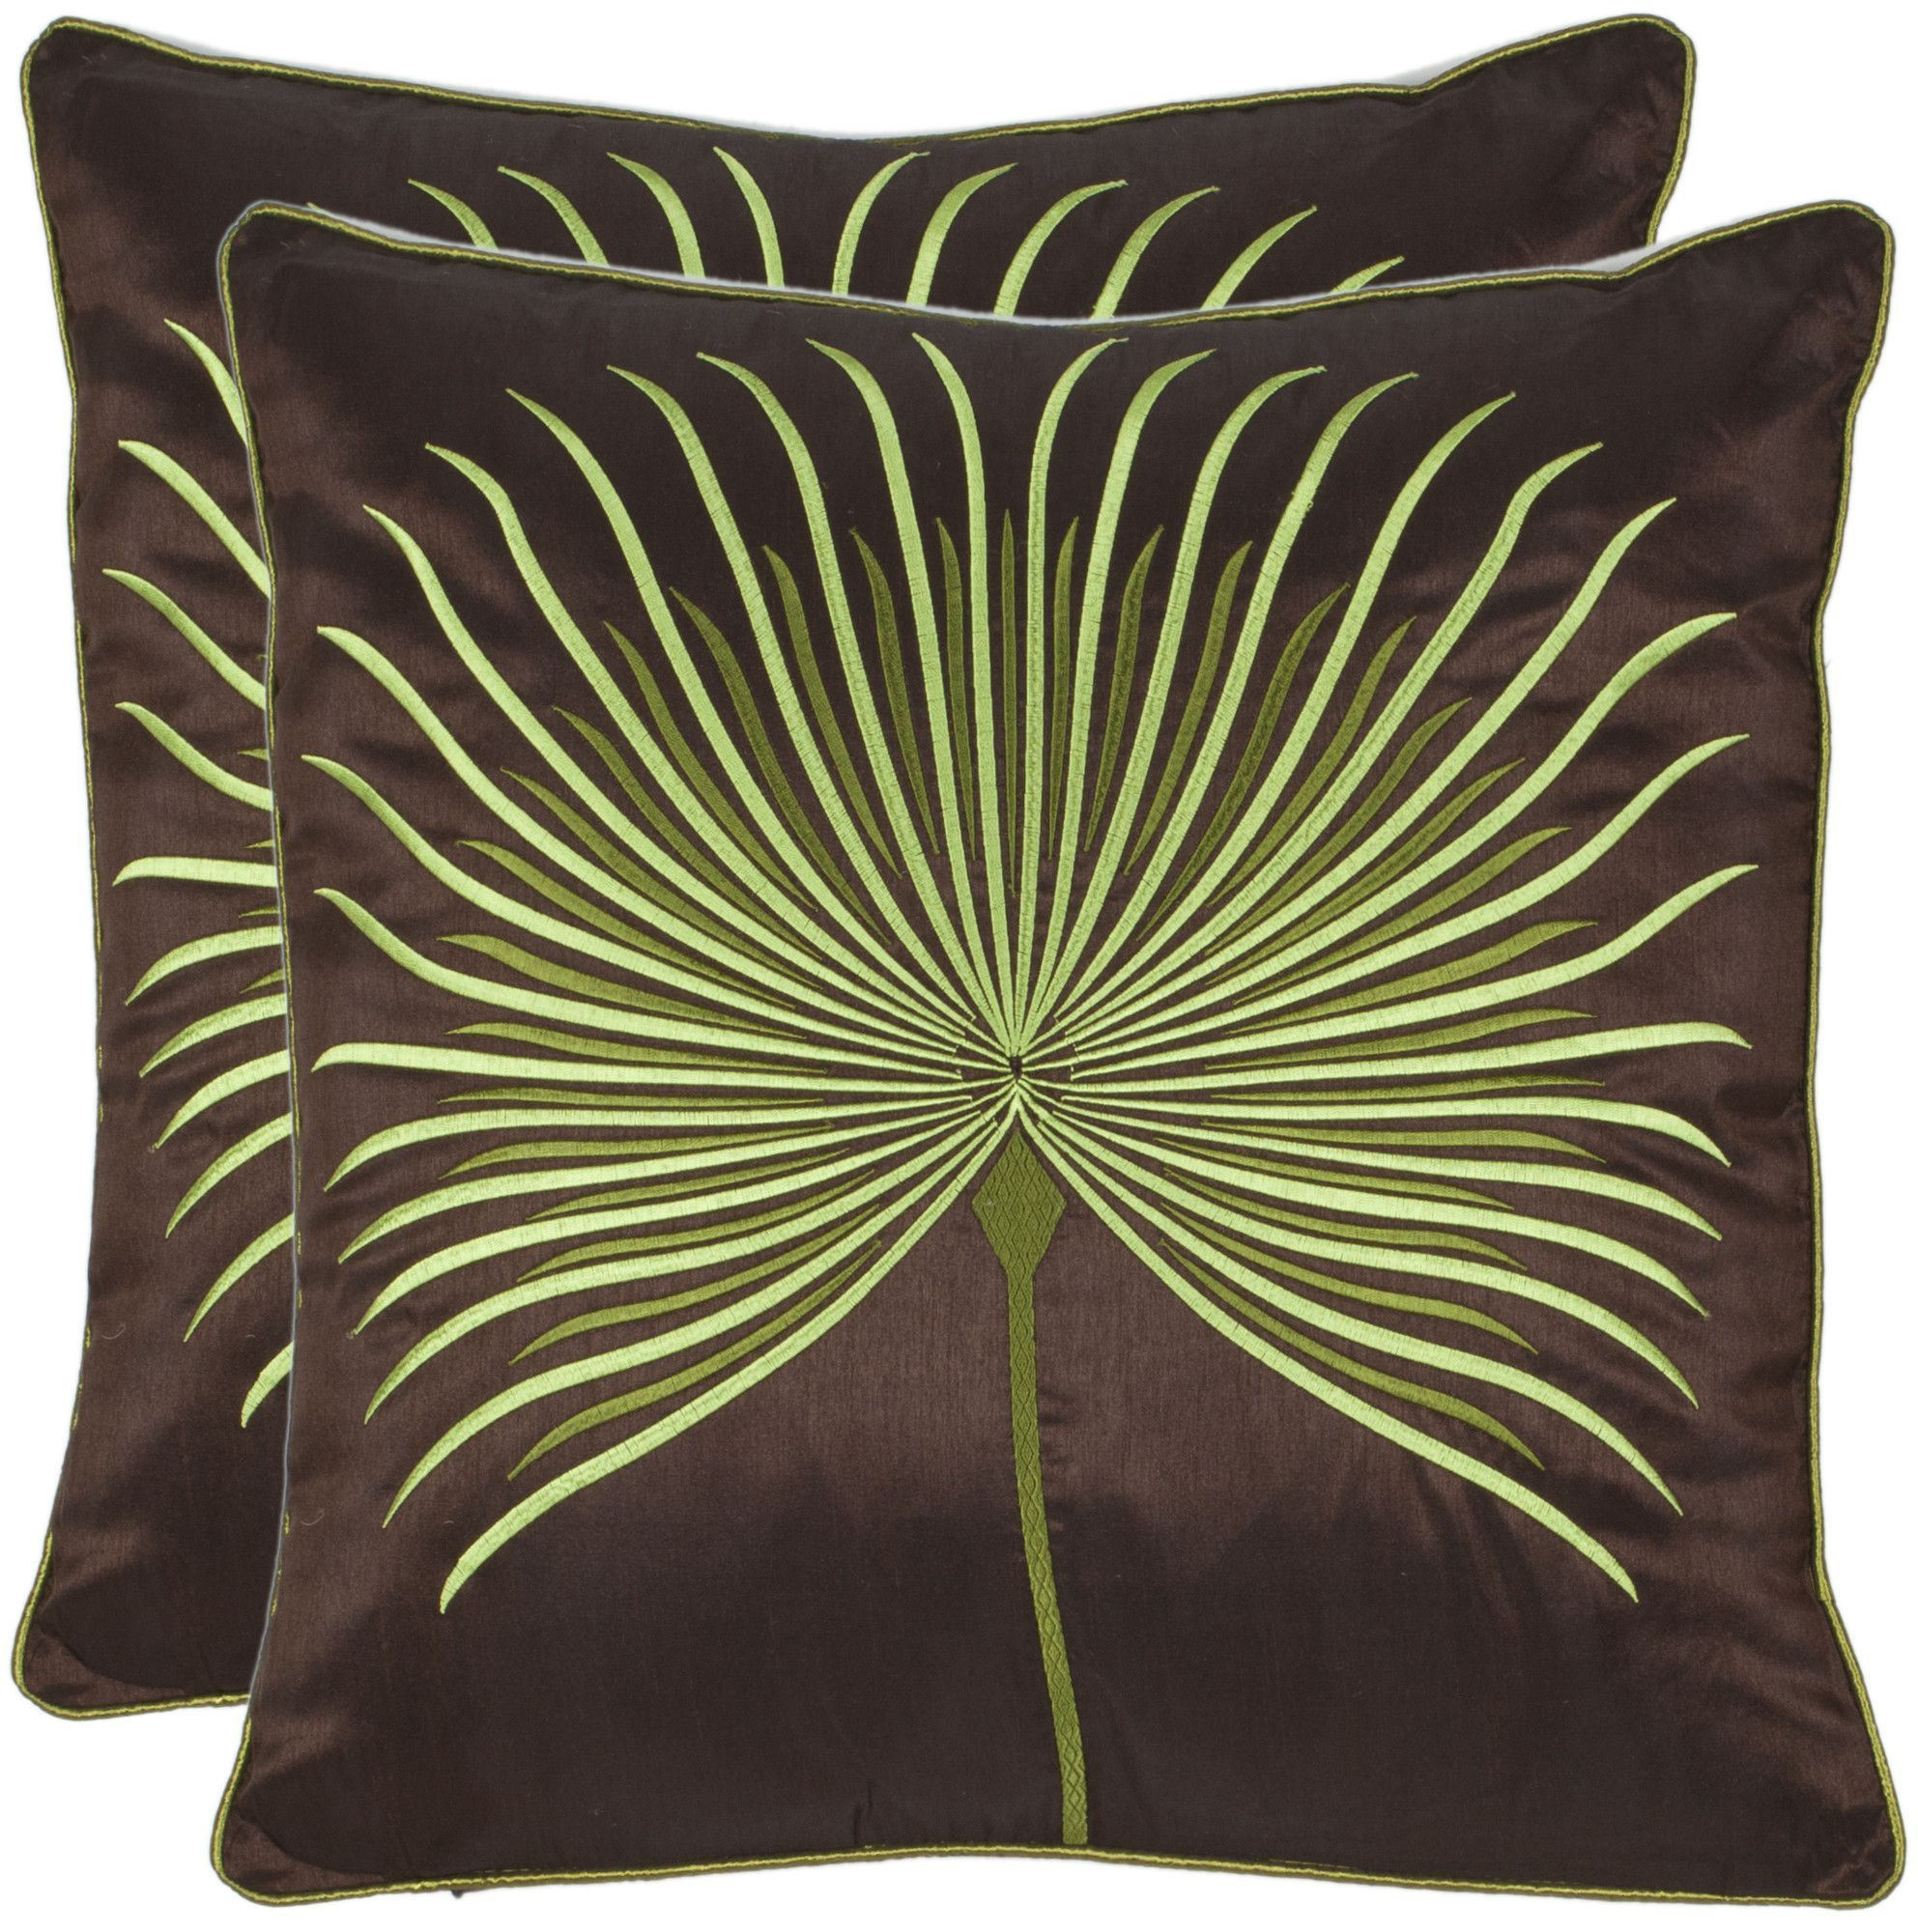 Throw Pillow Bordados Pinterest Throw Pillows And Pillows ~ How To Coordinate Throw Pillows For Sofa And Chairs